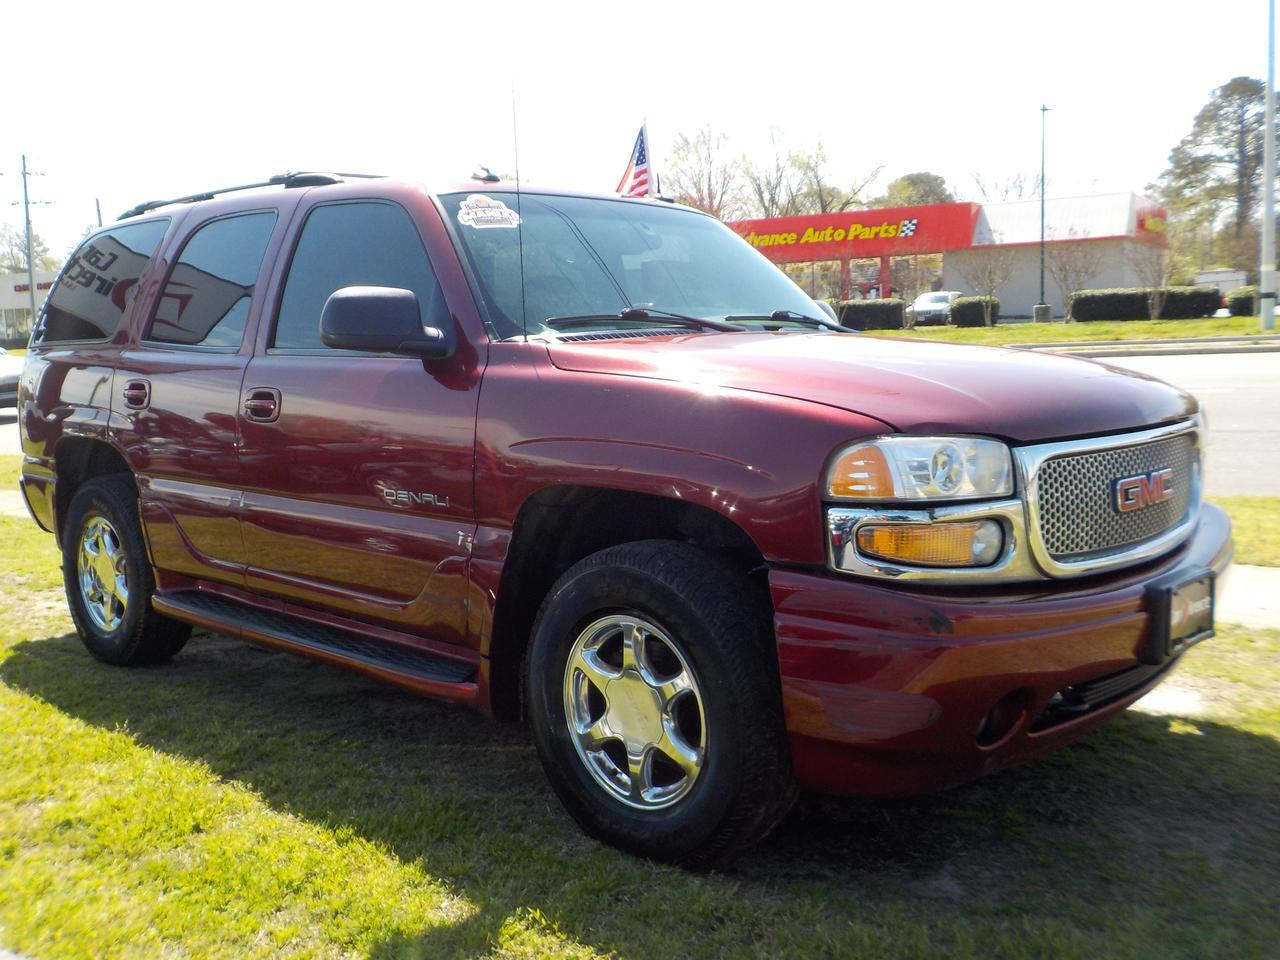 2003 GMC YUKON DENALI, WHOLESALE TO THE PUBLIC! GET THIS DEAL BEFORE IT GOES TO AUCTION! Virginia Beach VA